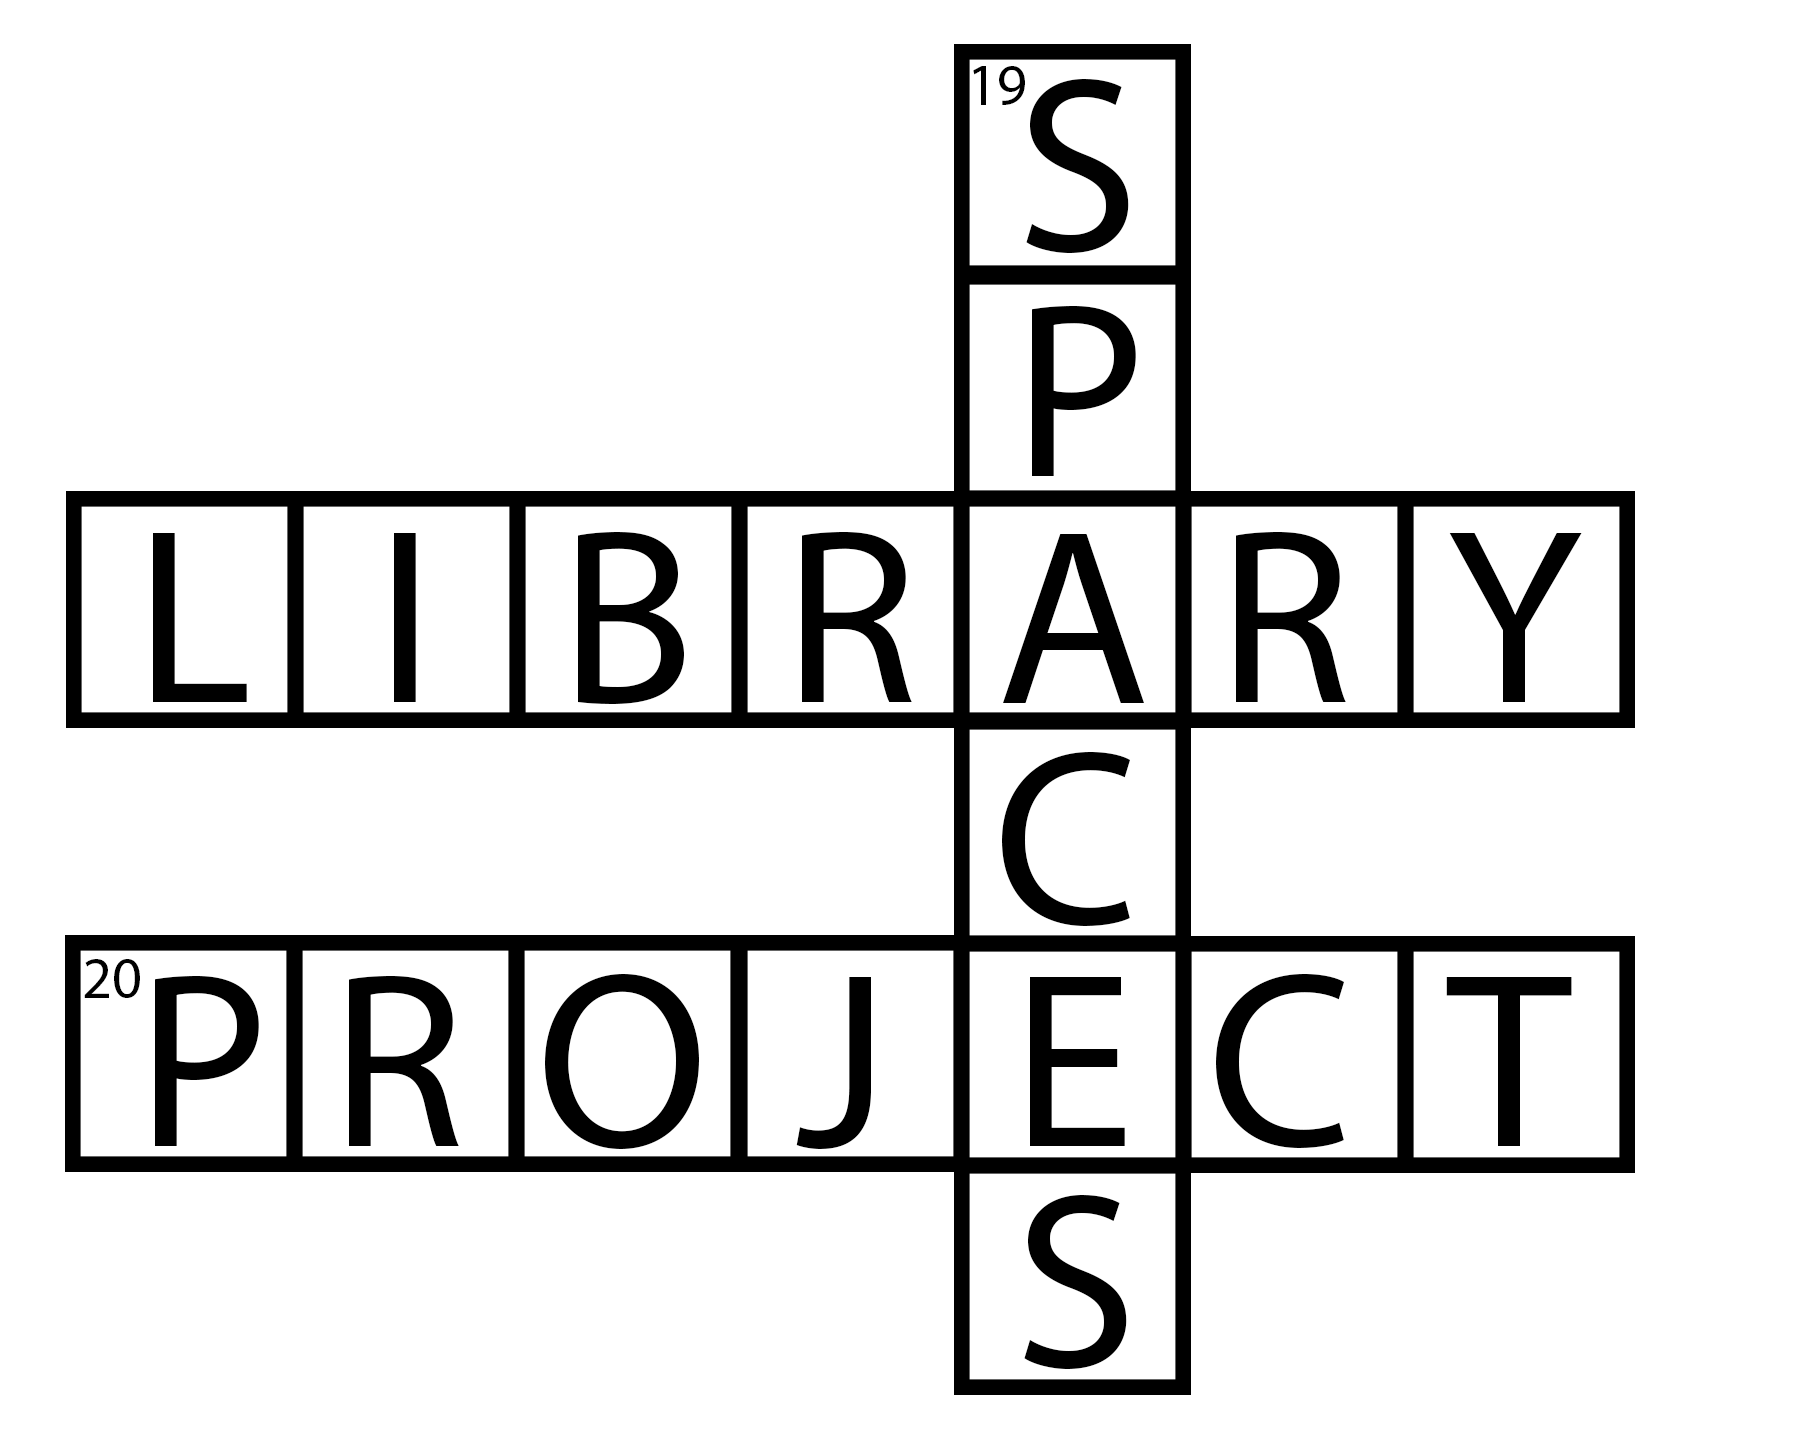 Library Spaces graphic image